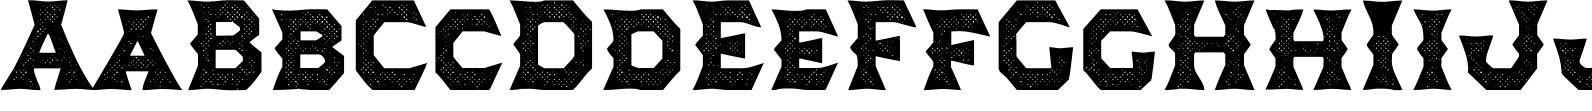 Dever Wedge Halftone Bold Font